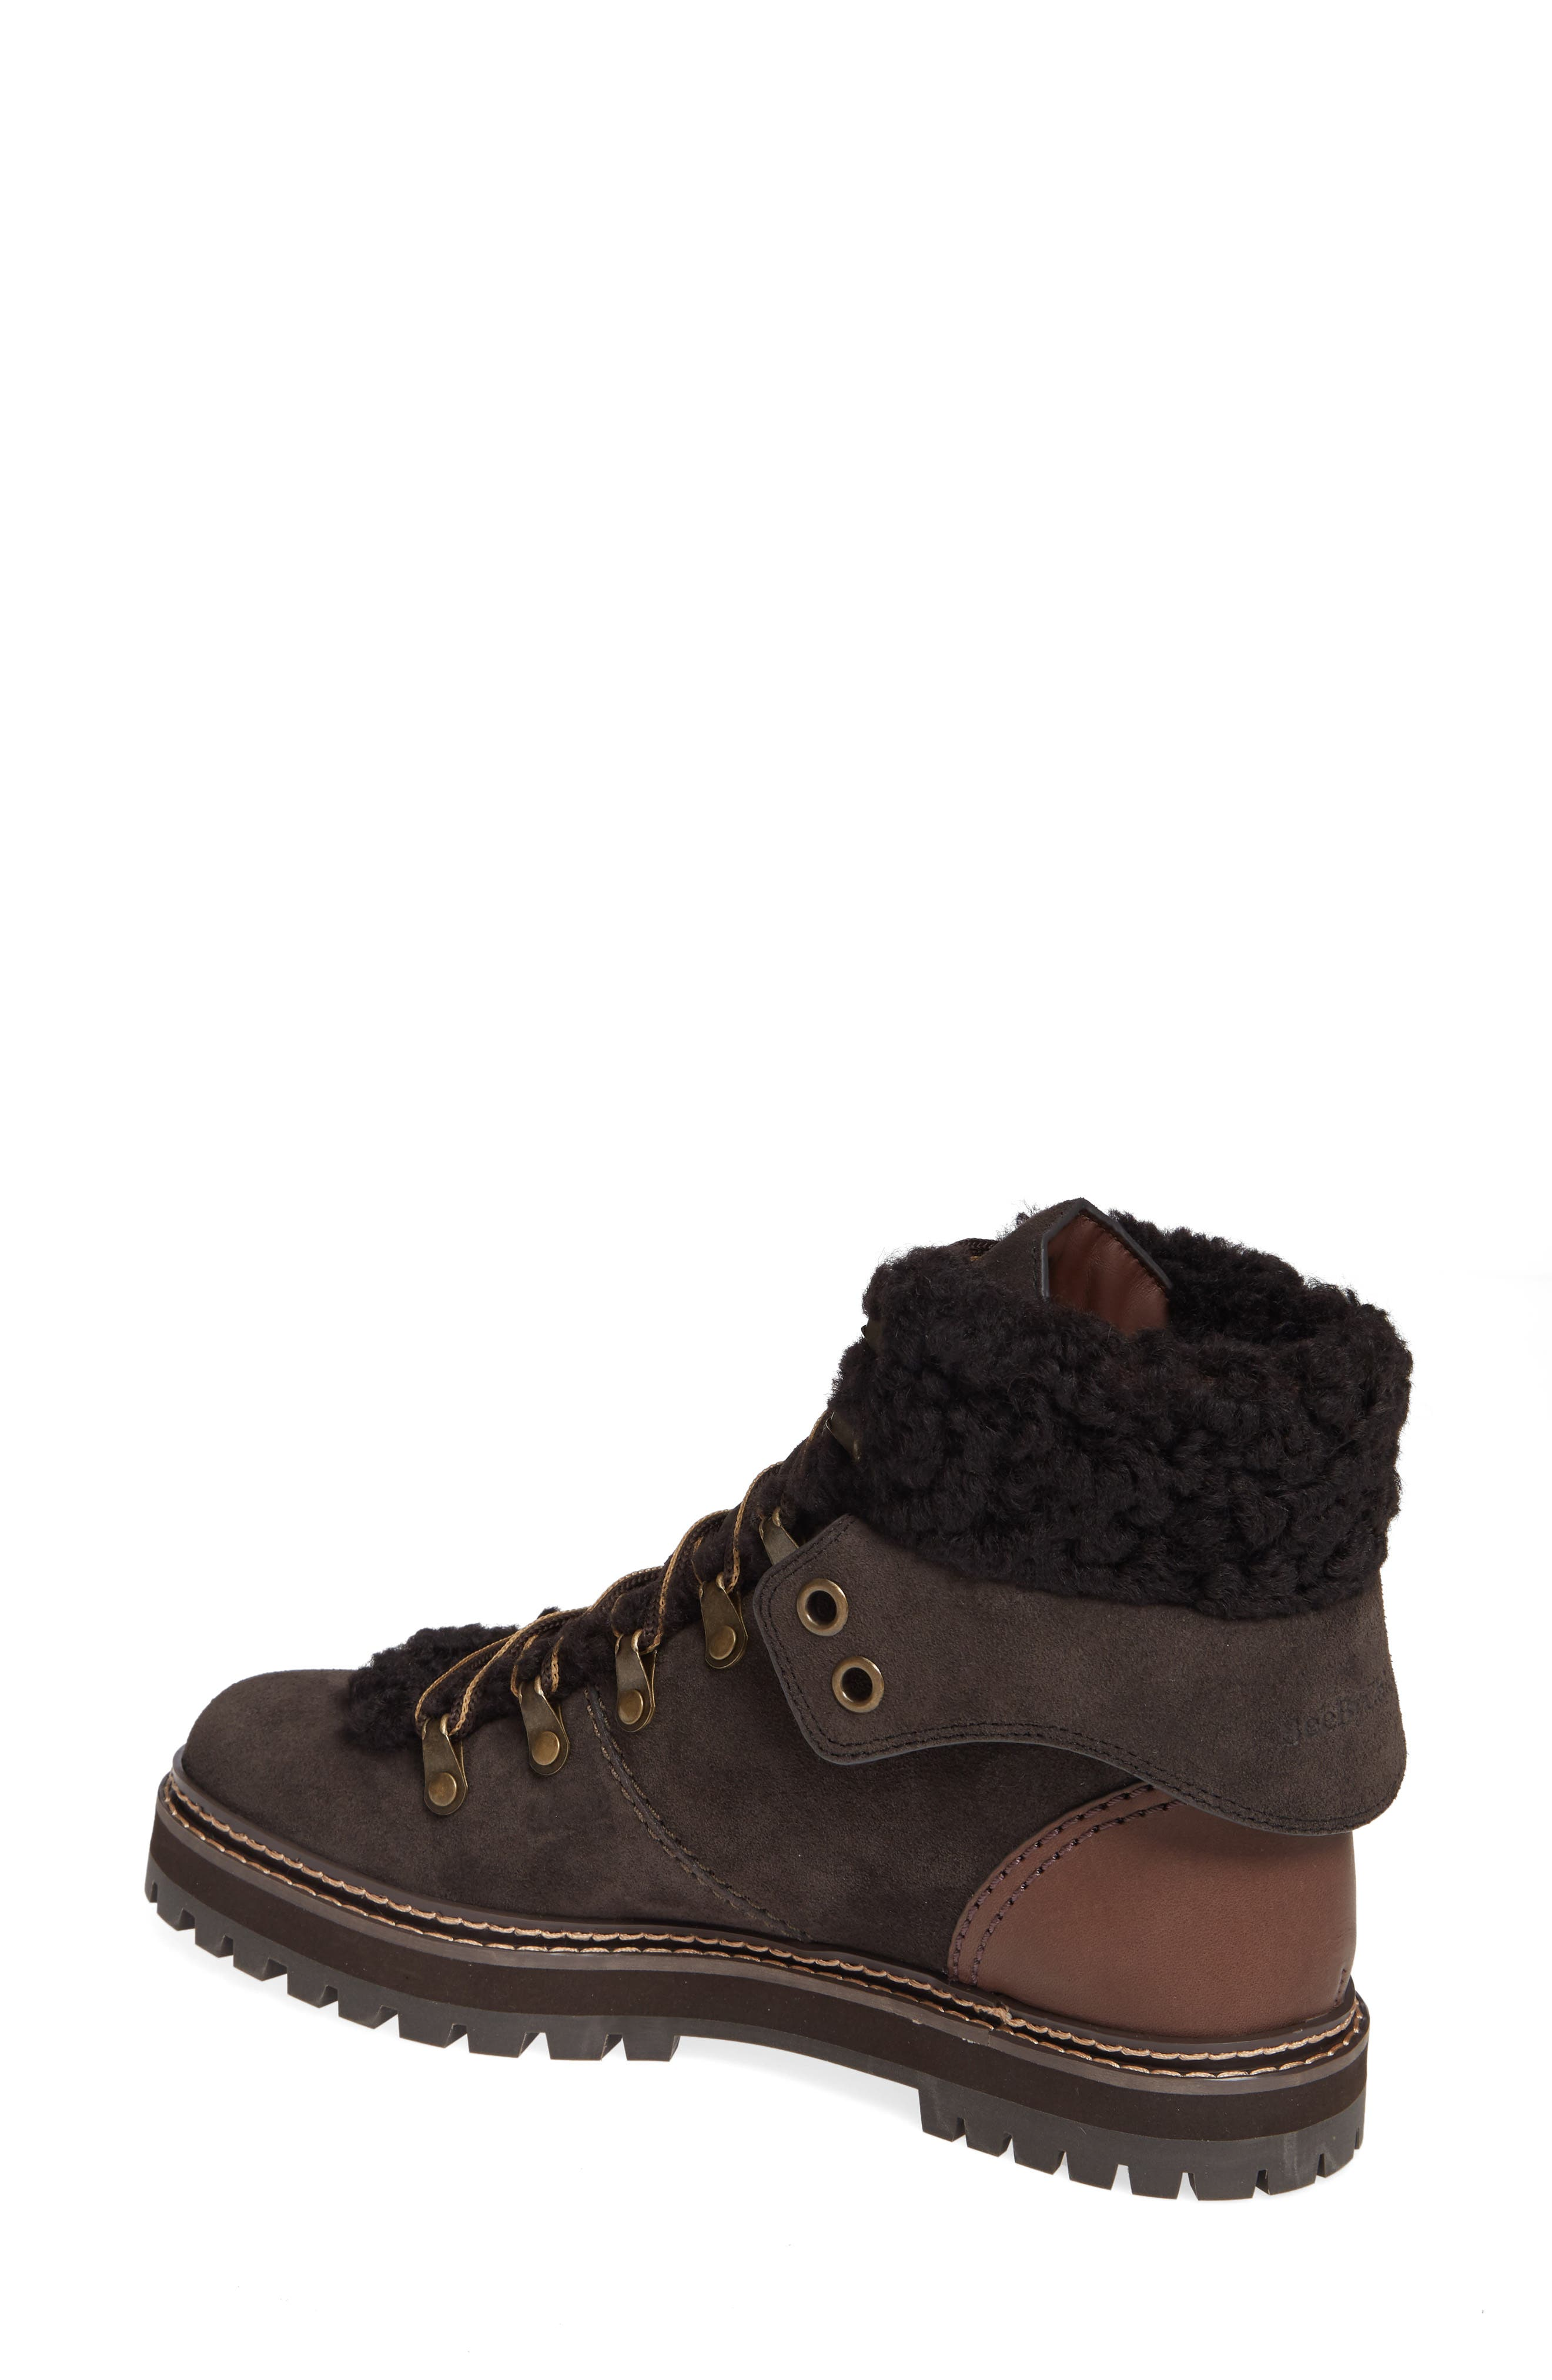 'Eileen' Genuine Shearling Boot,                             Alternate thumbnail 4, color,